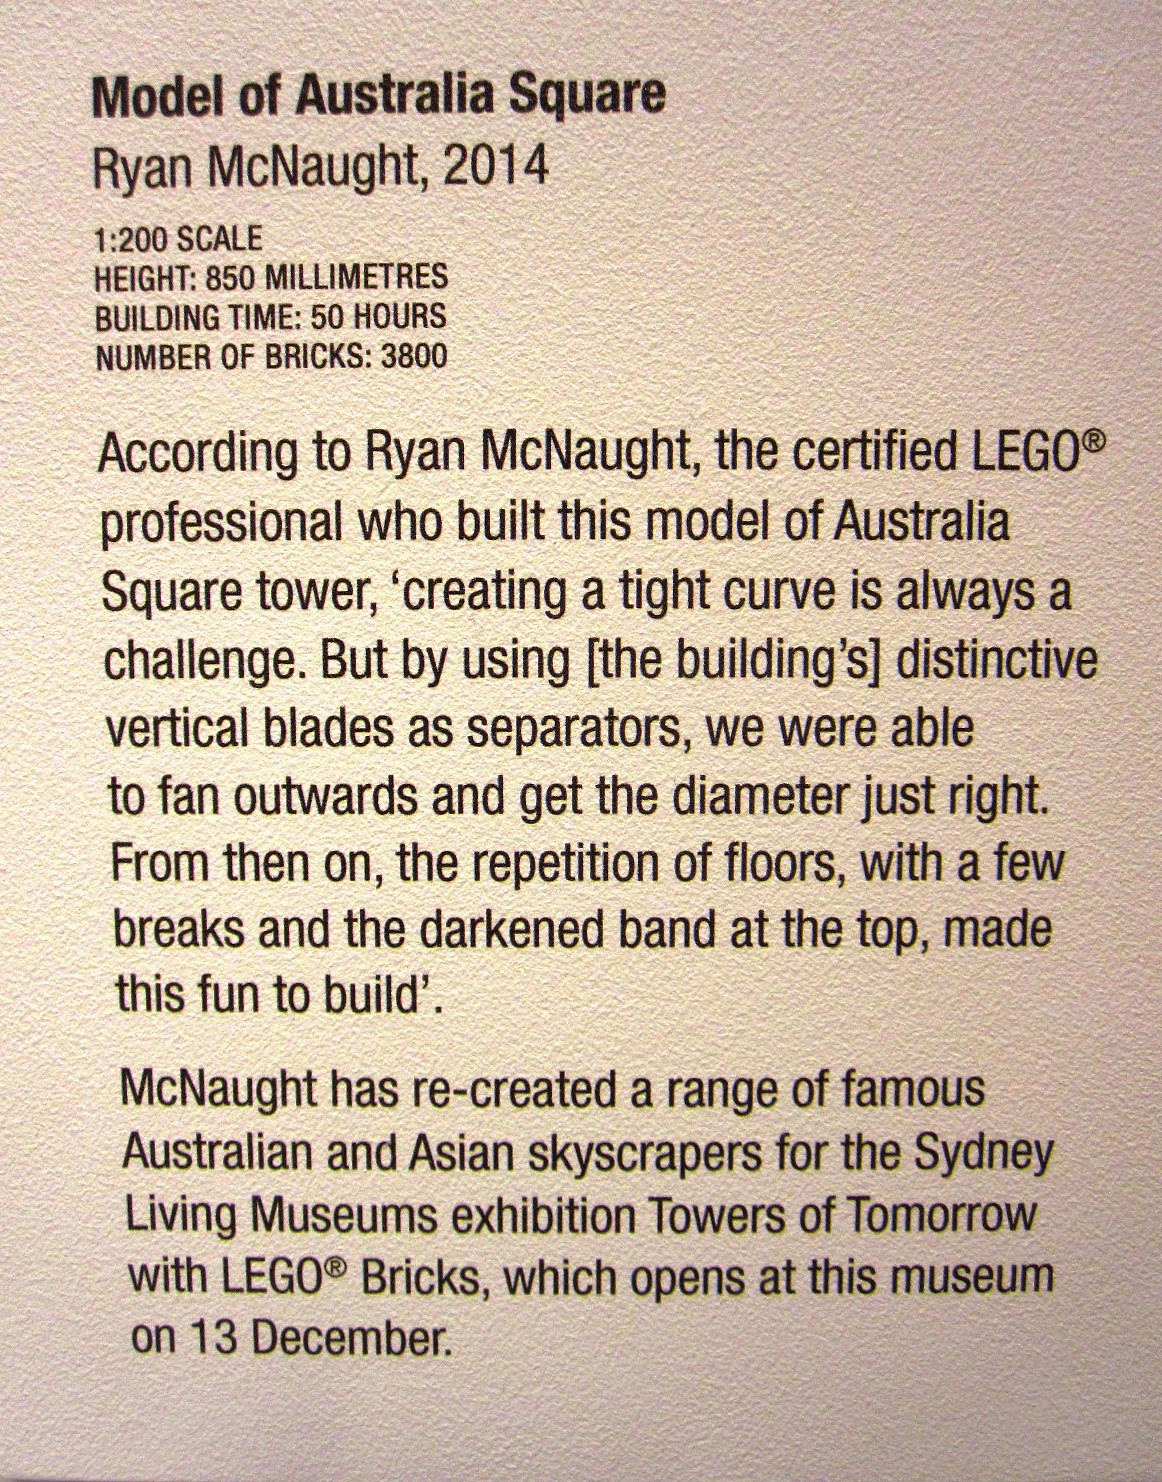 Exhibition card for the Lego model of Australia Square.